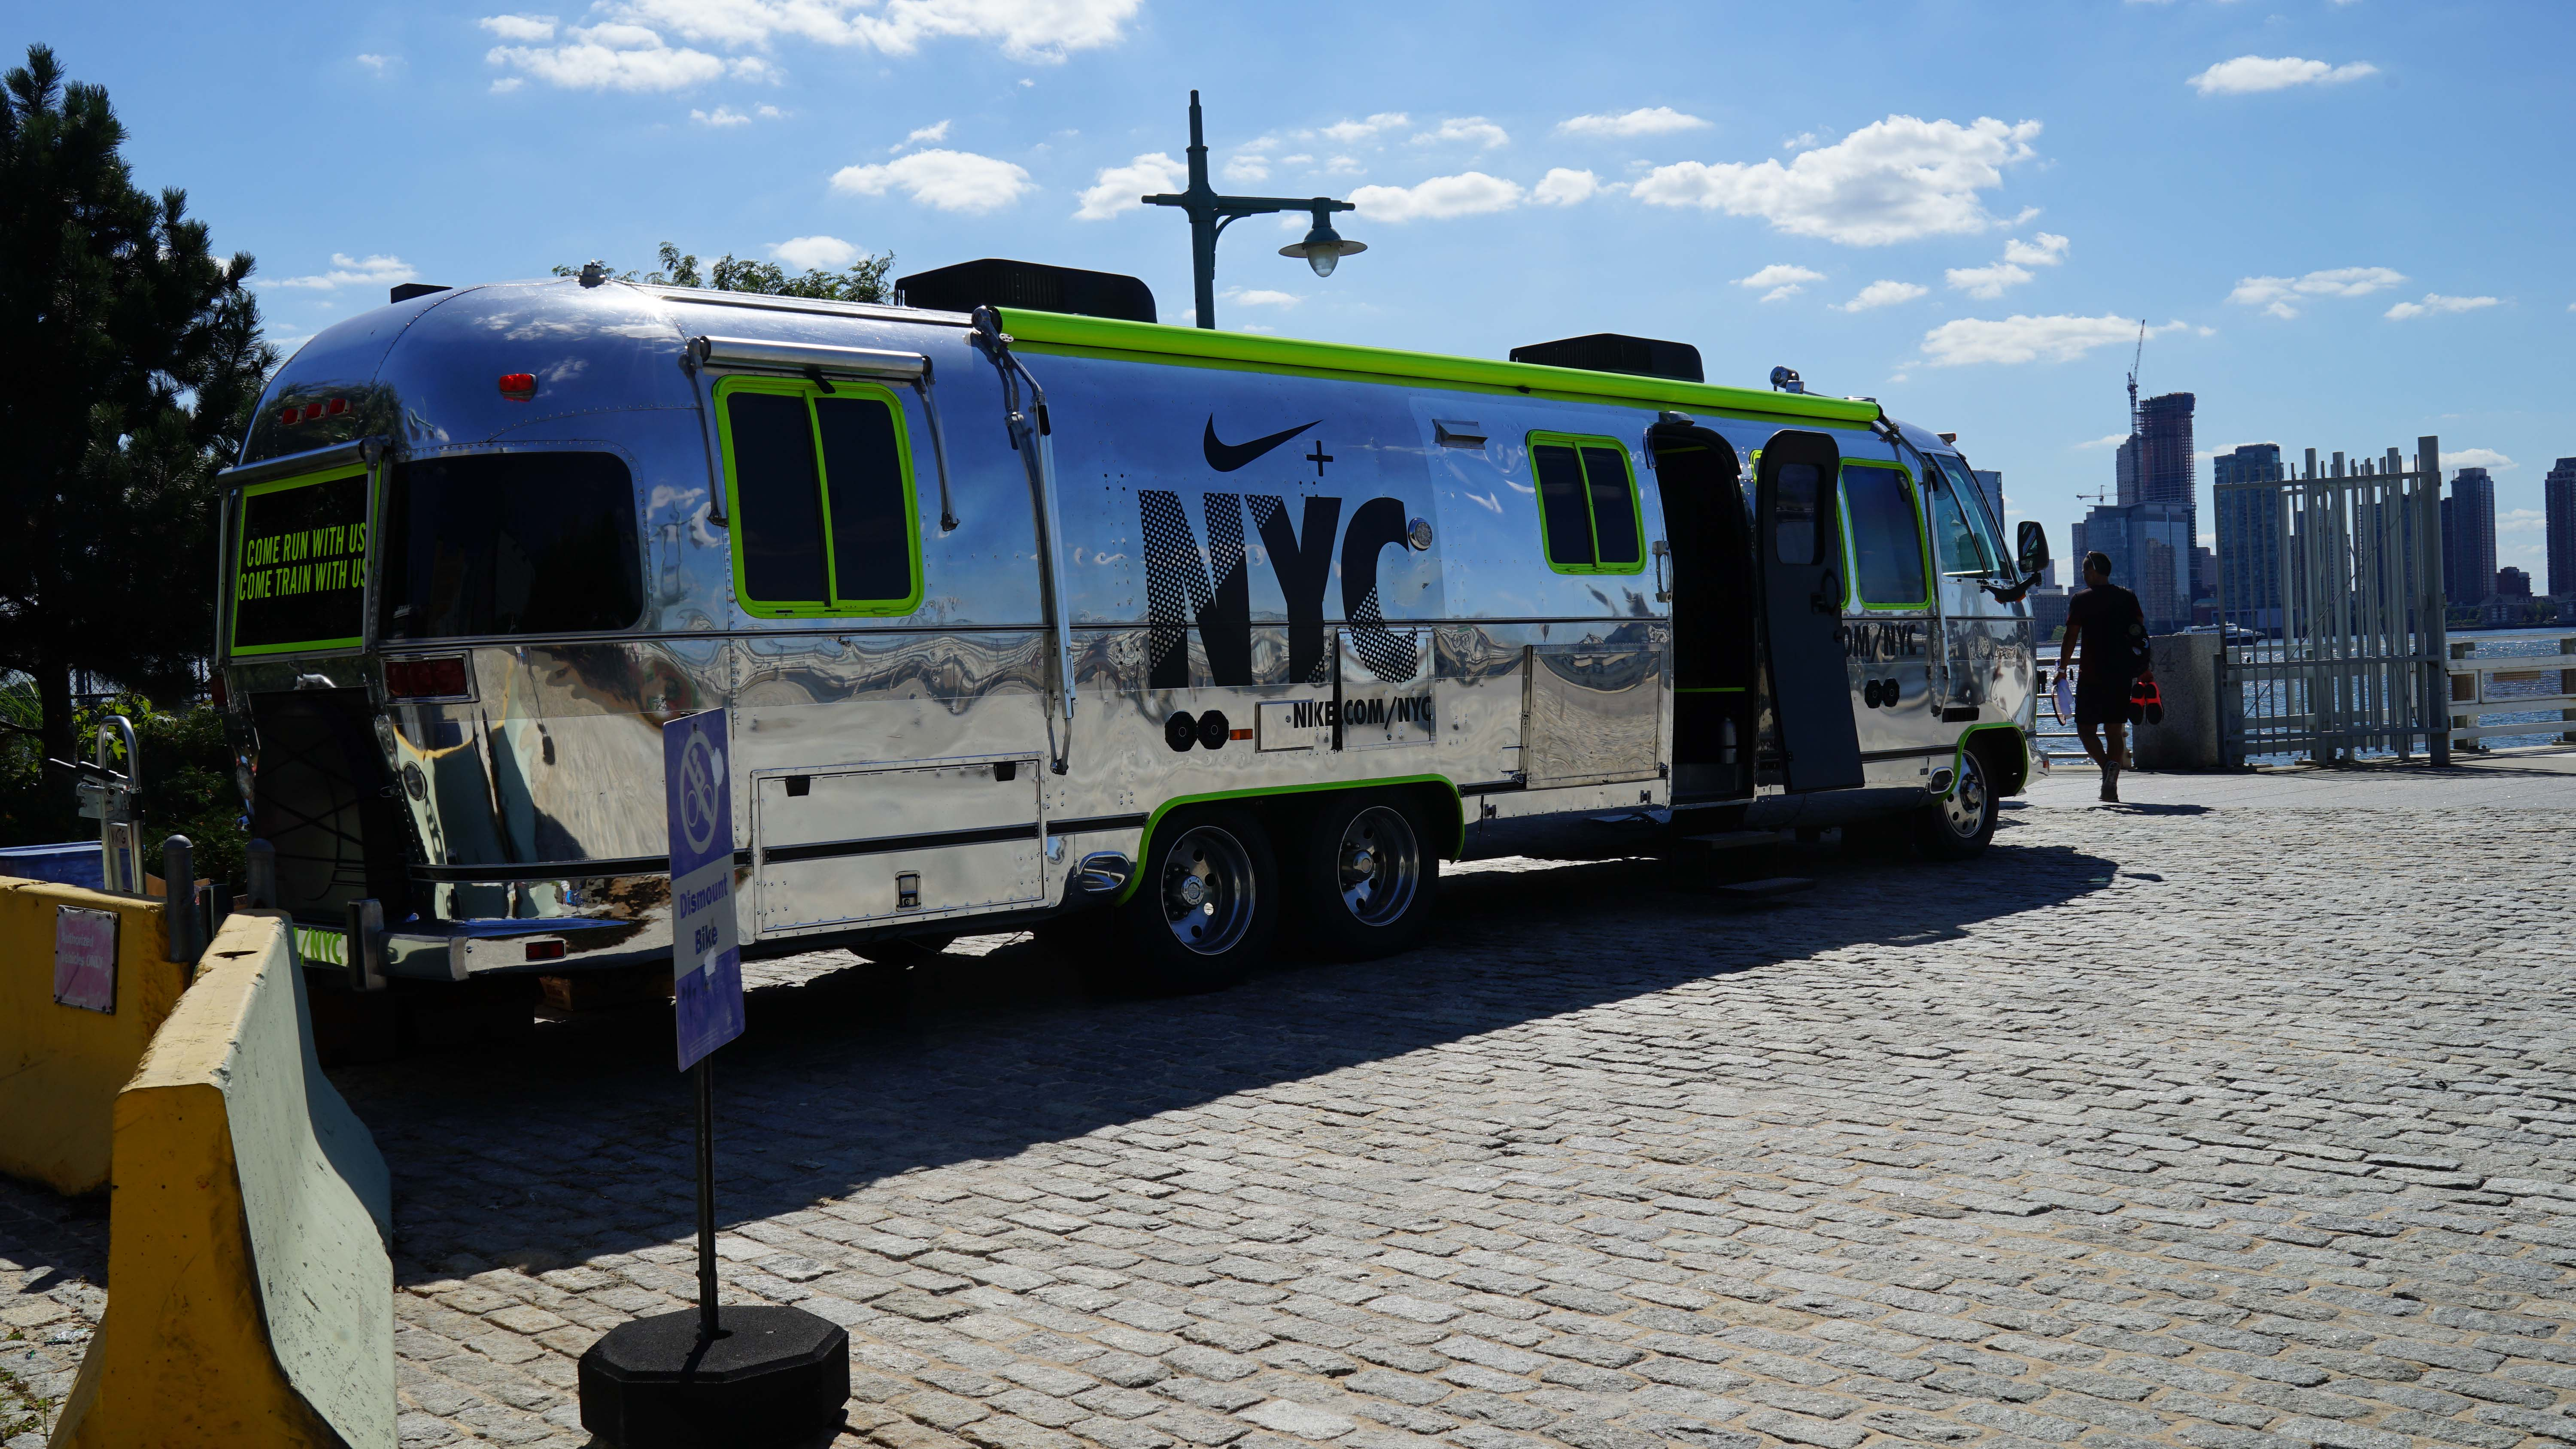 Nike air stream bus for runners